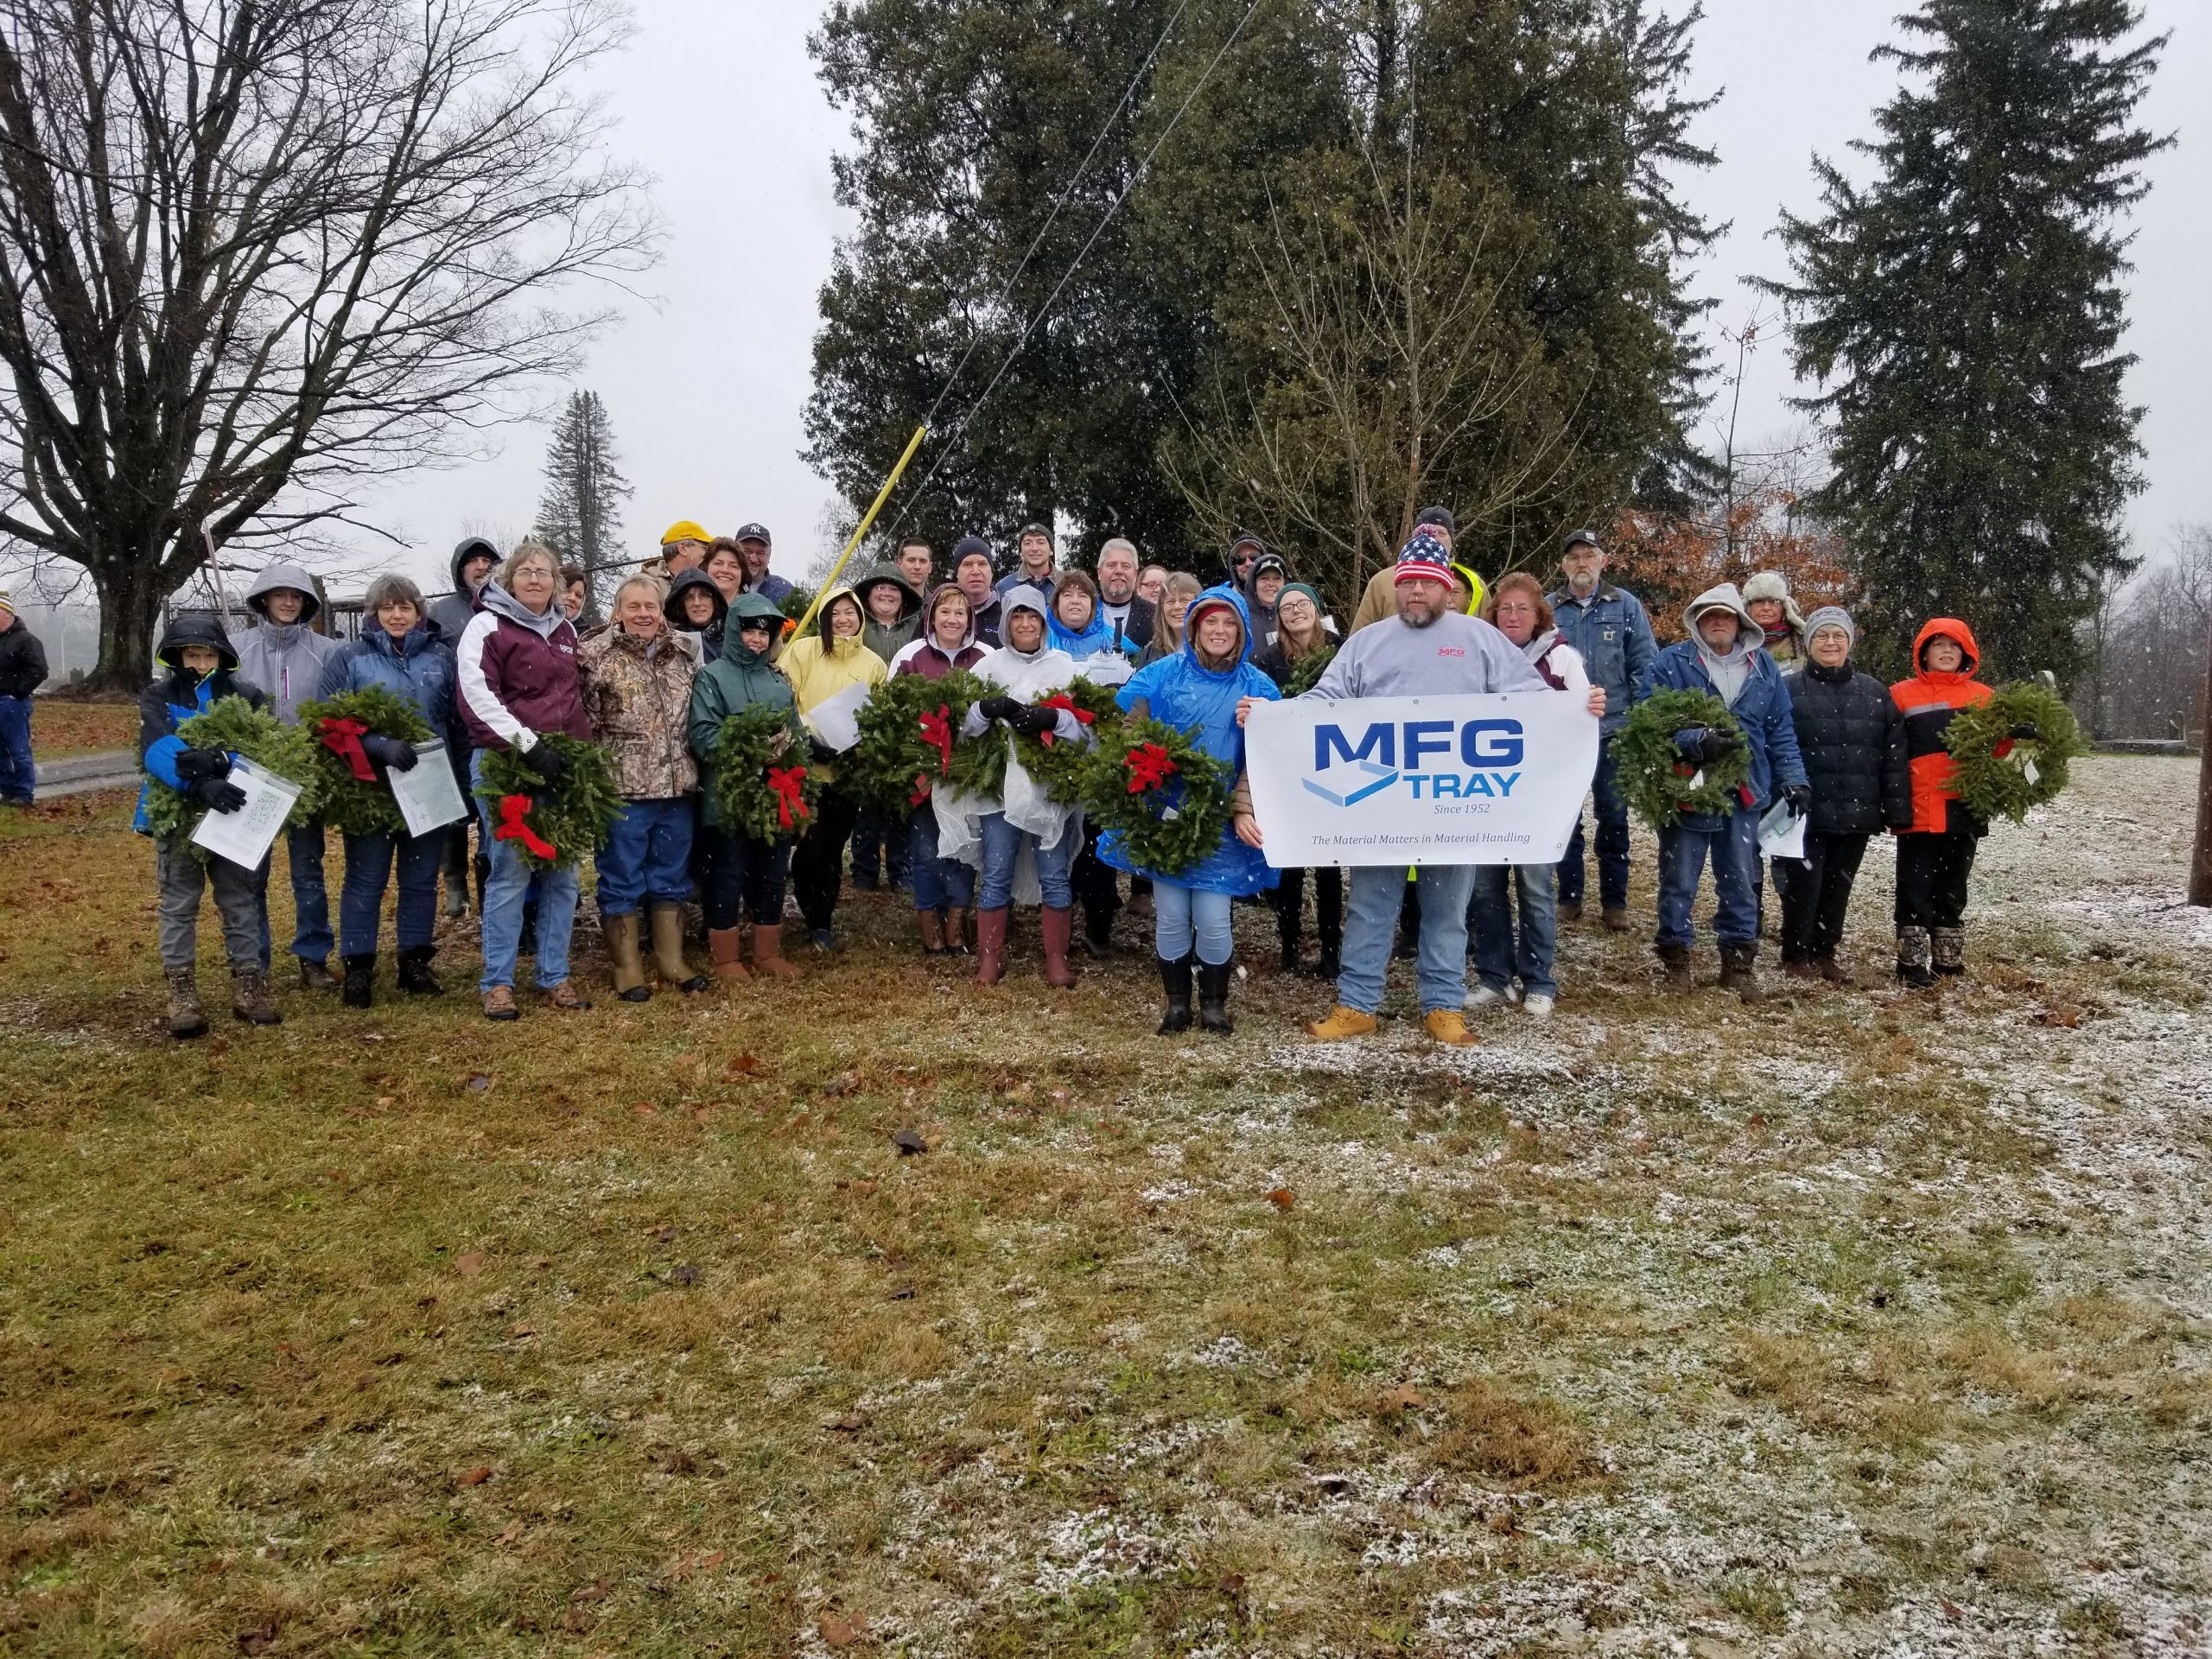 50 MFG Tray teammates and family gathered to volunteer for Wreaths Across America at Linesville Cemetery in Linesville, Pennsylvania